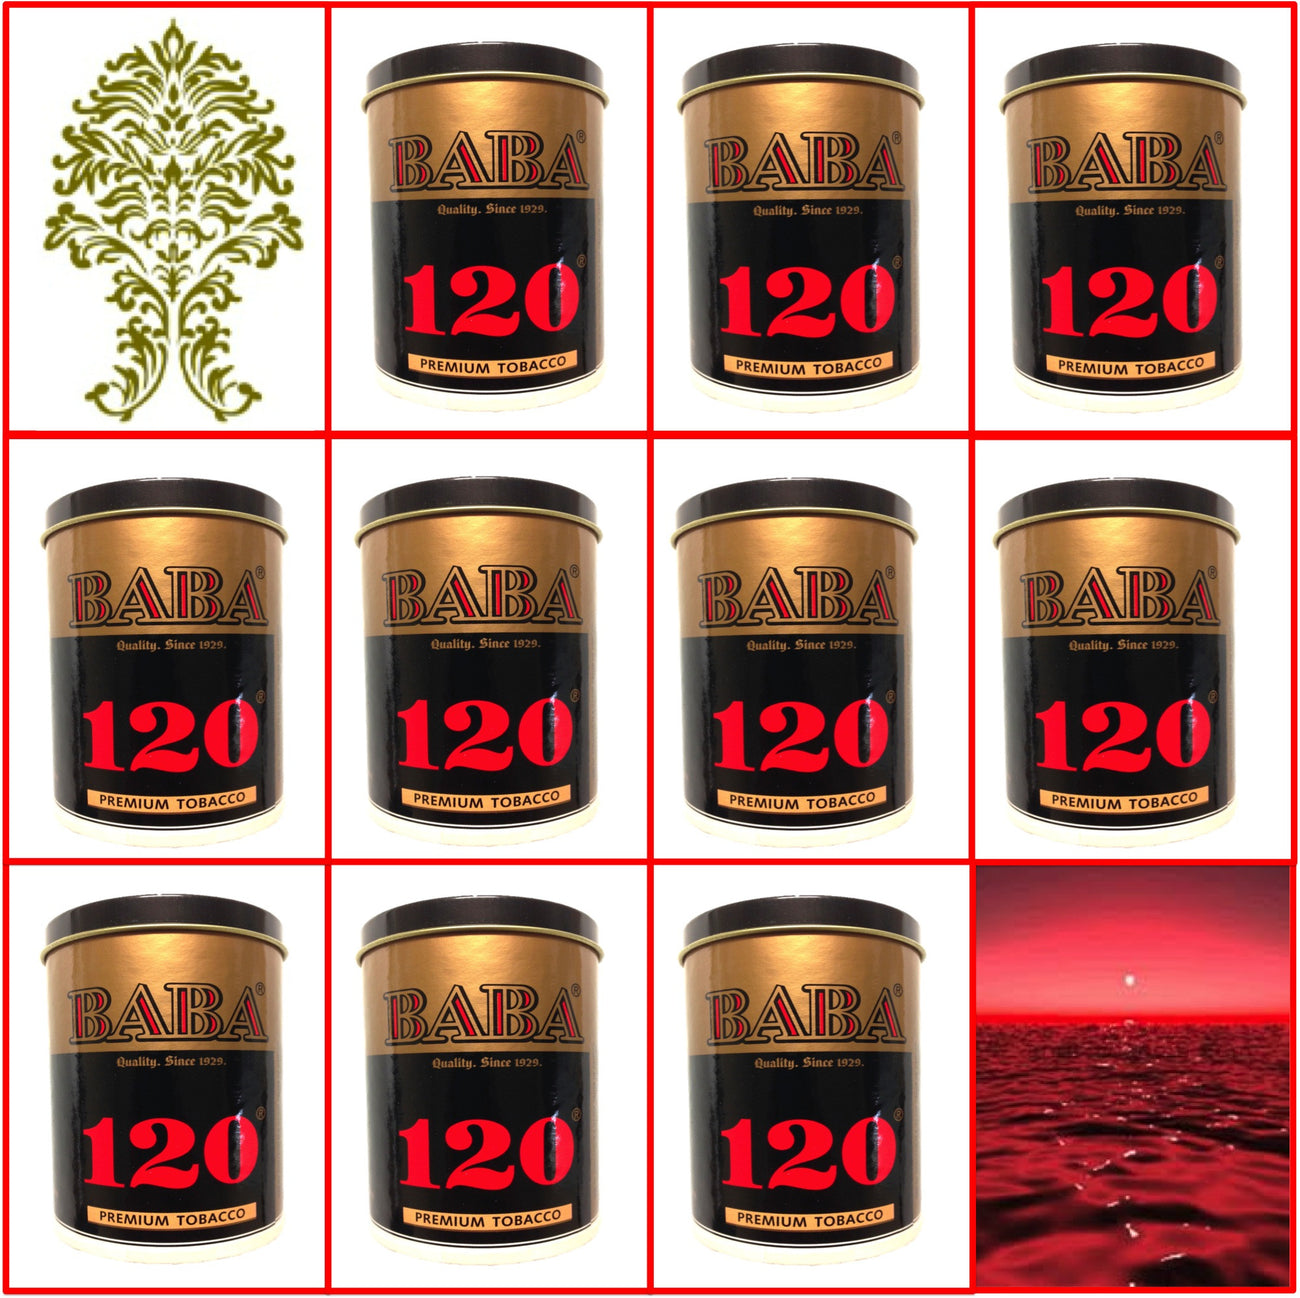 10 Cans Baba 120 (Silver) Premium Tobacco 50g Each January 2020